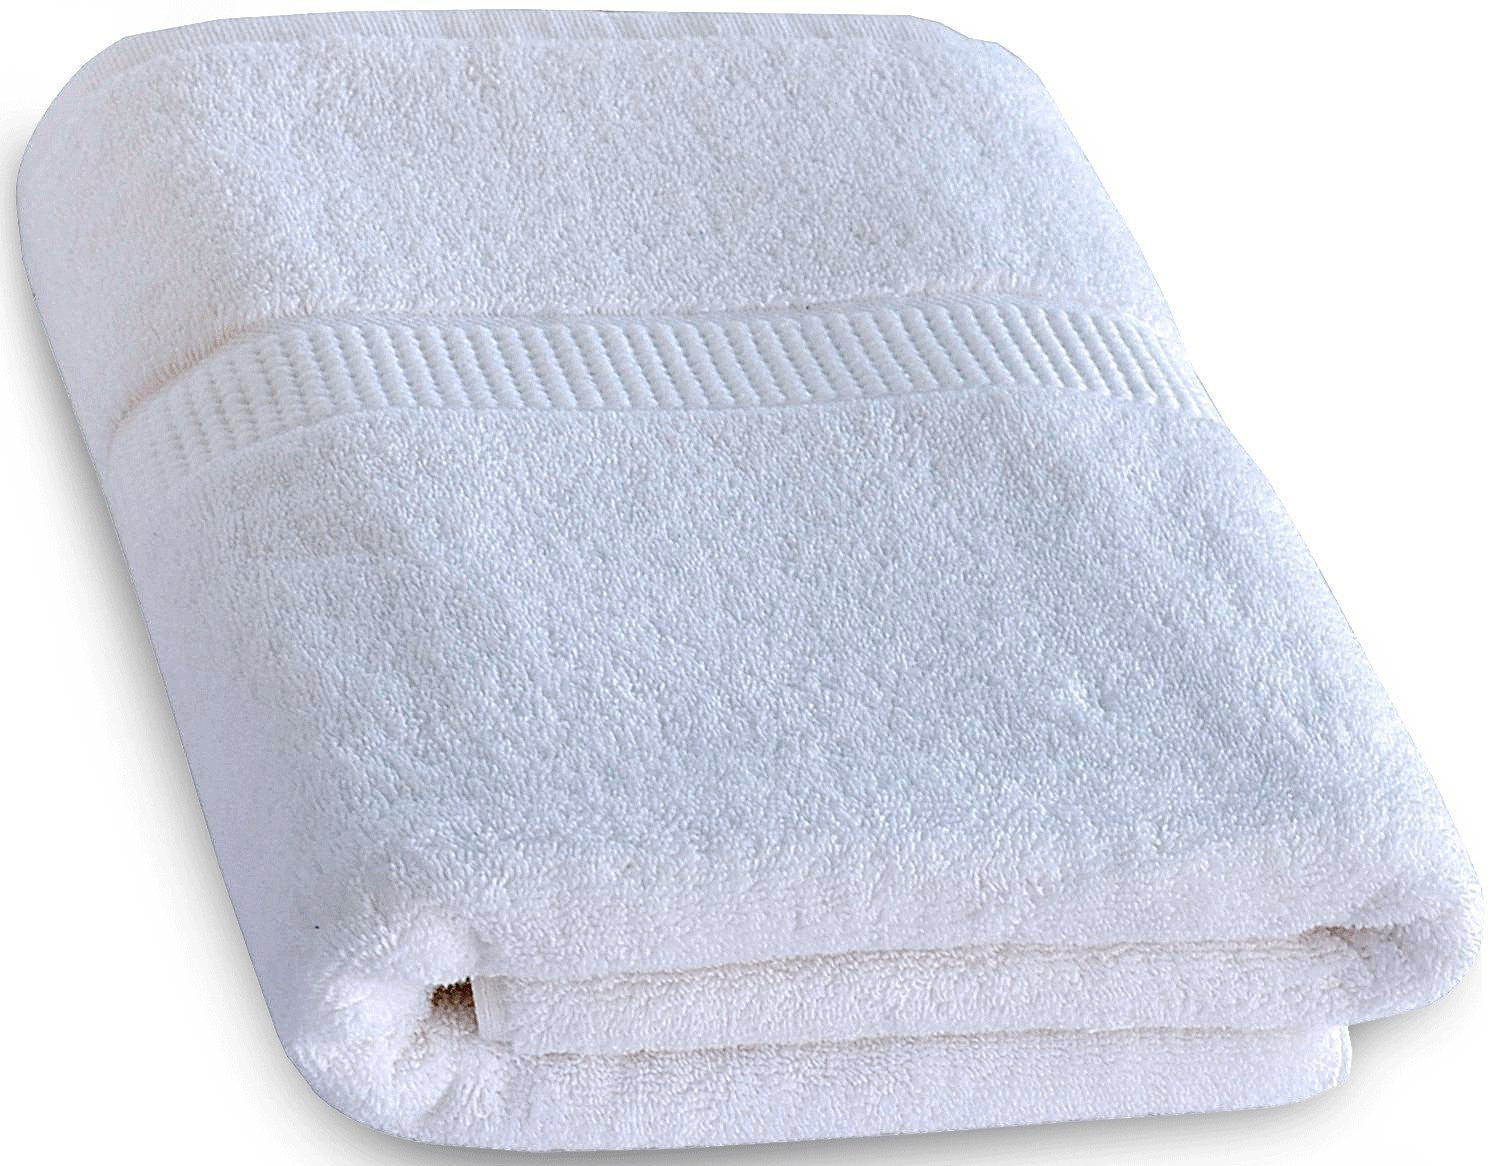 Luxury Cotton Bath Sheet - White